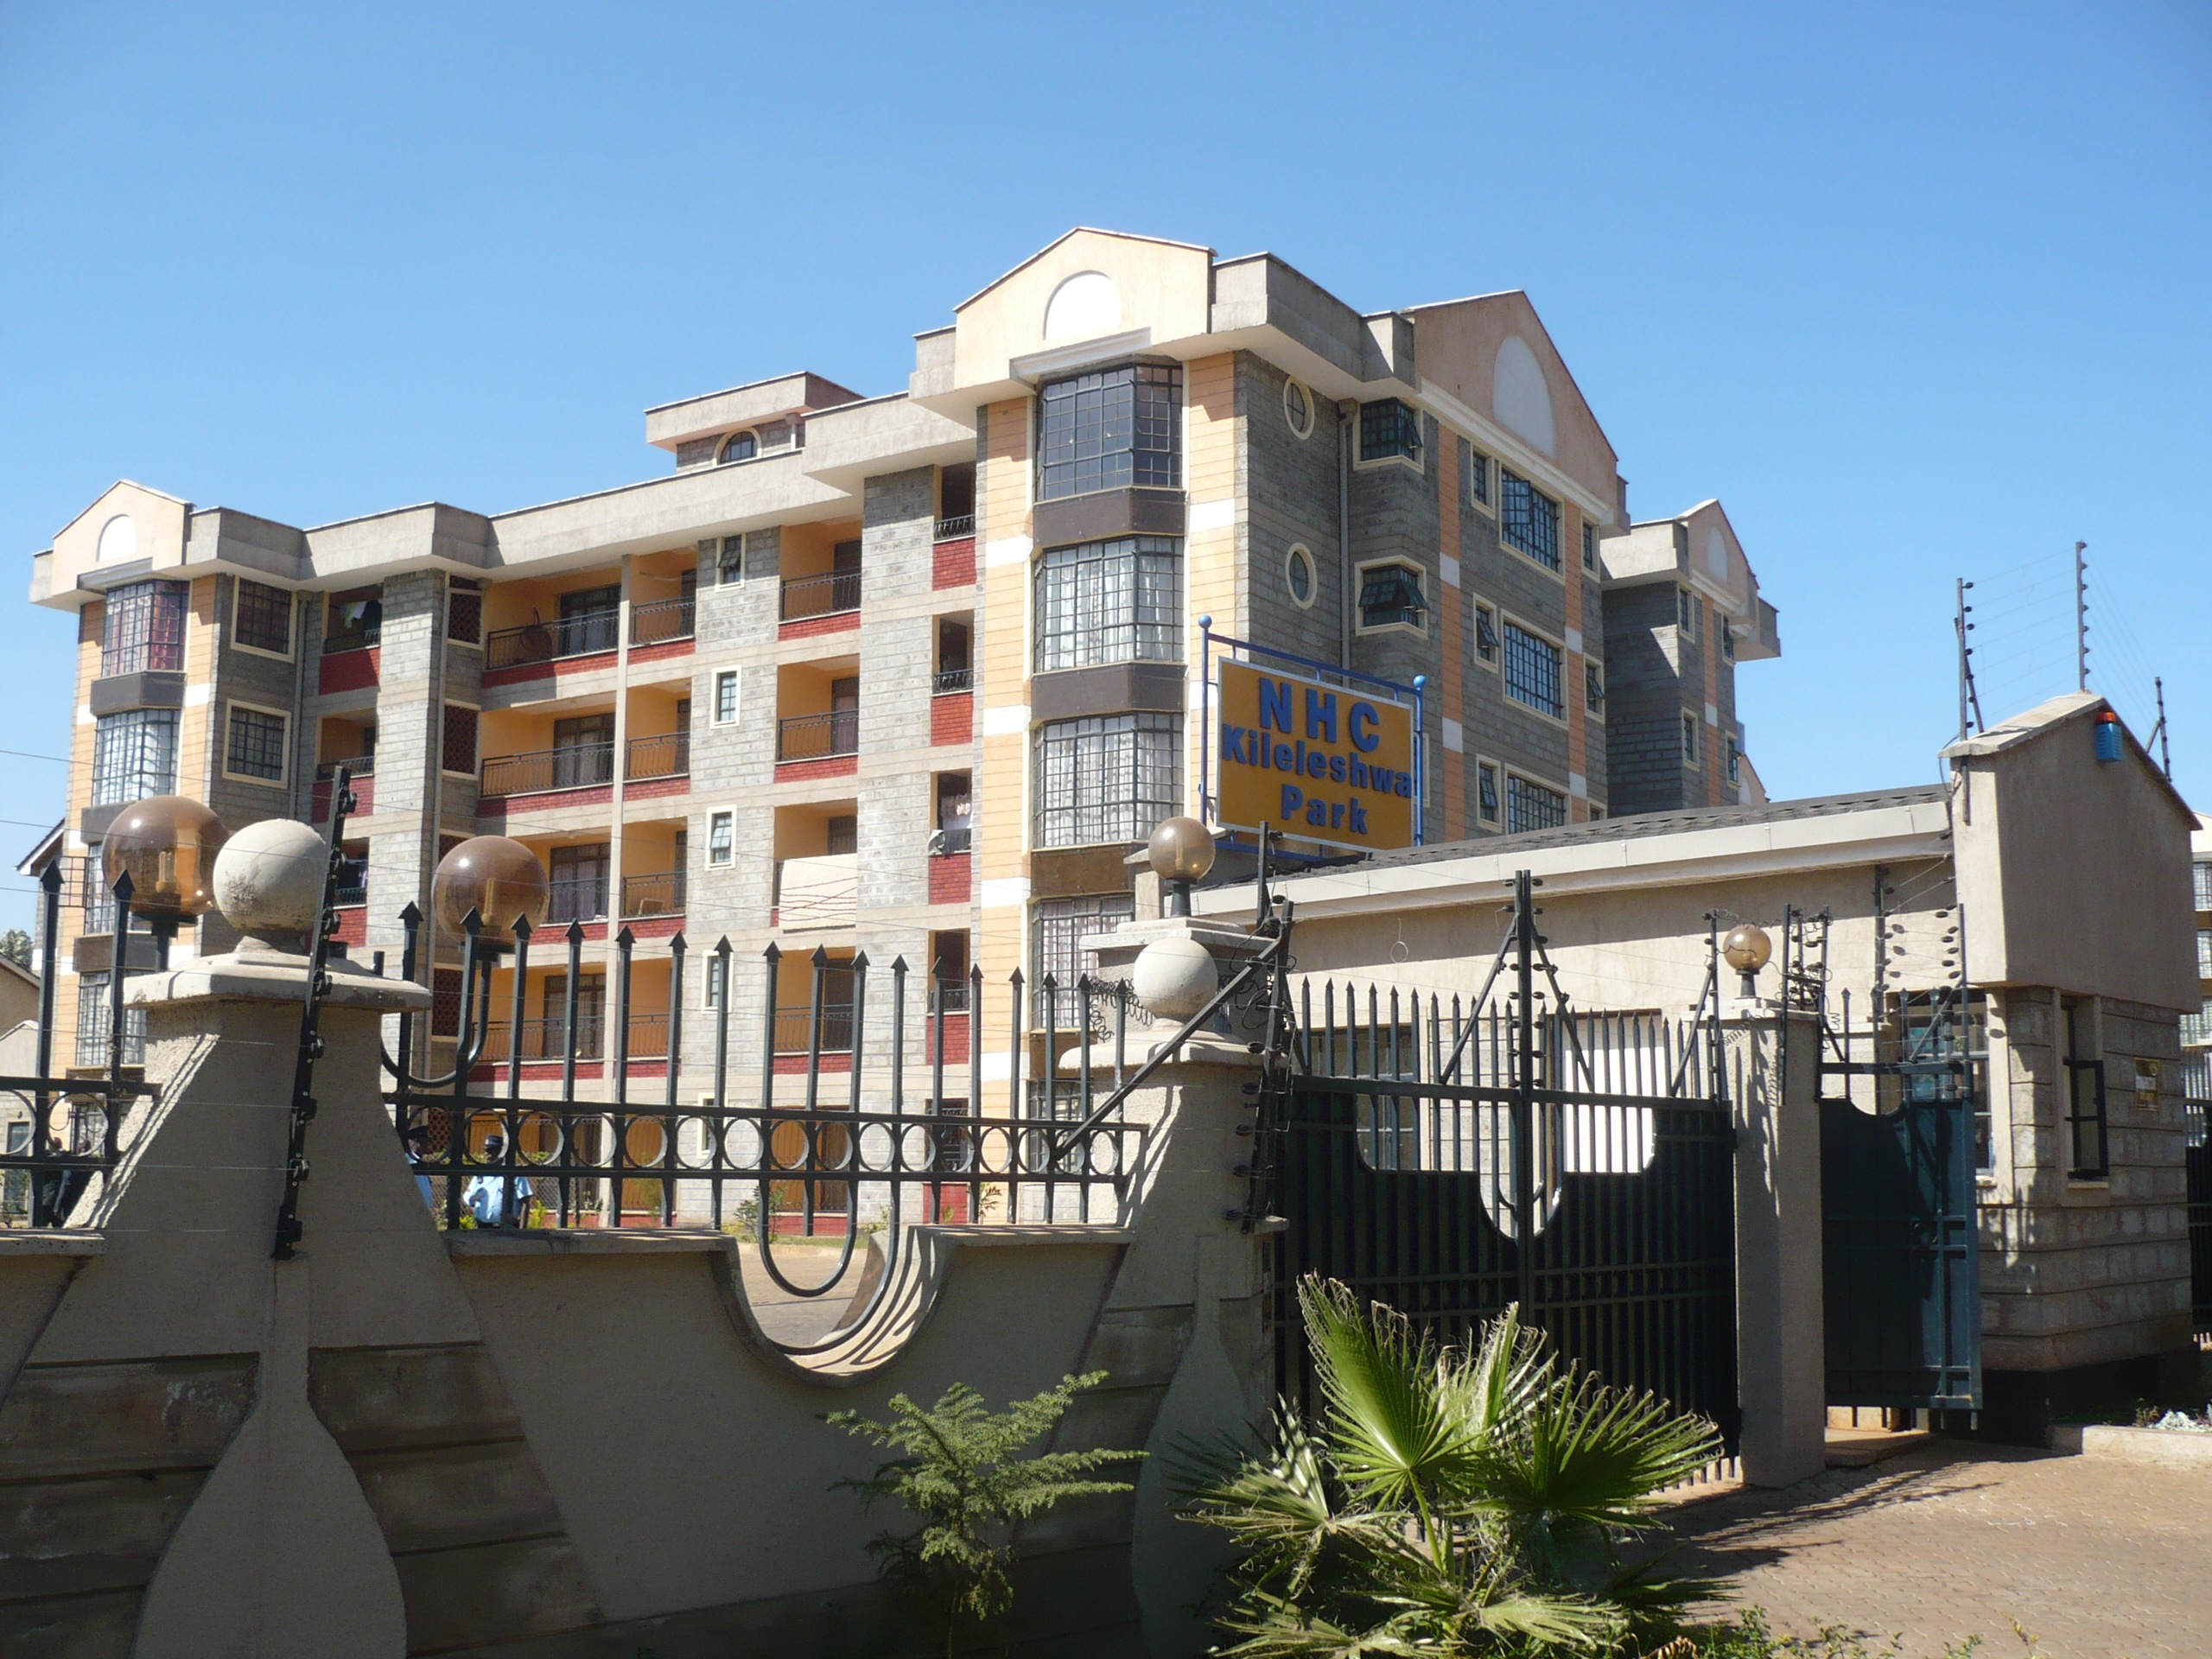 A block of flats in kileleshwa a smart middle class area in nairobi kenya credit brian ngugiips